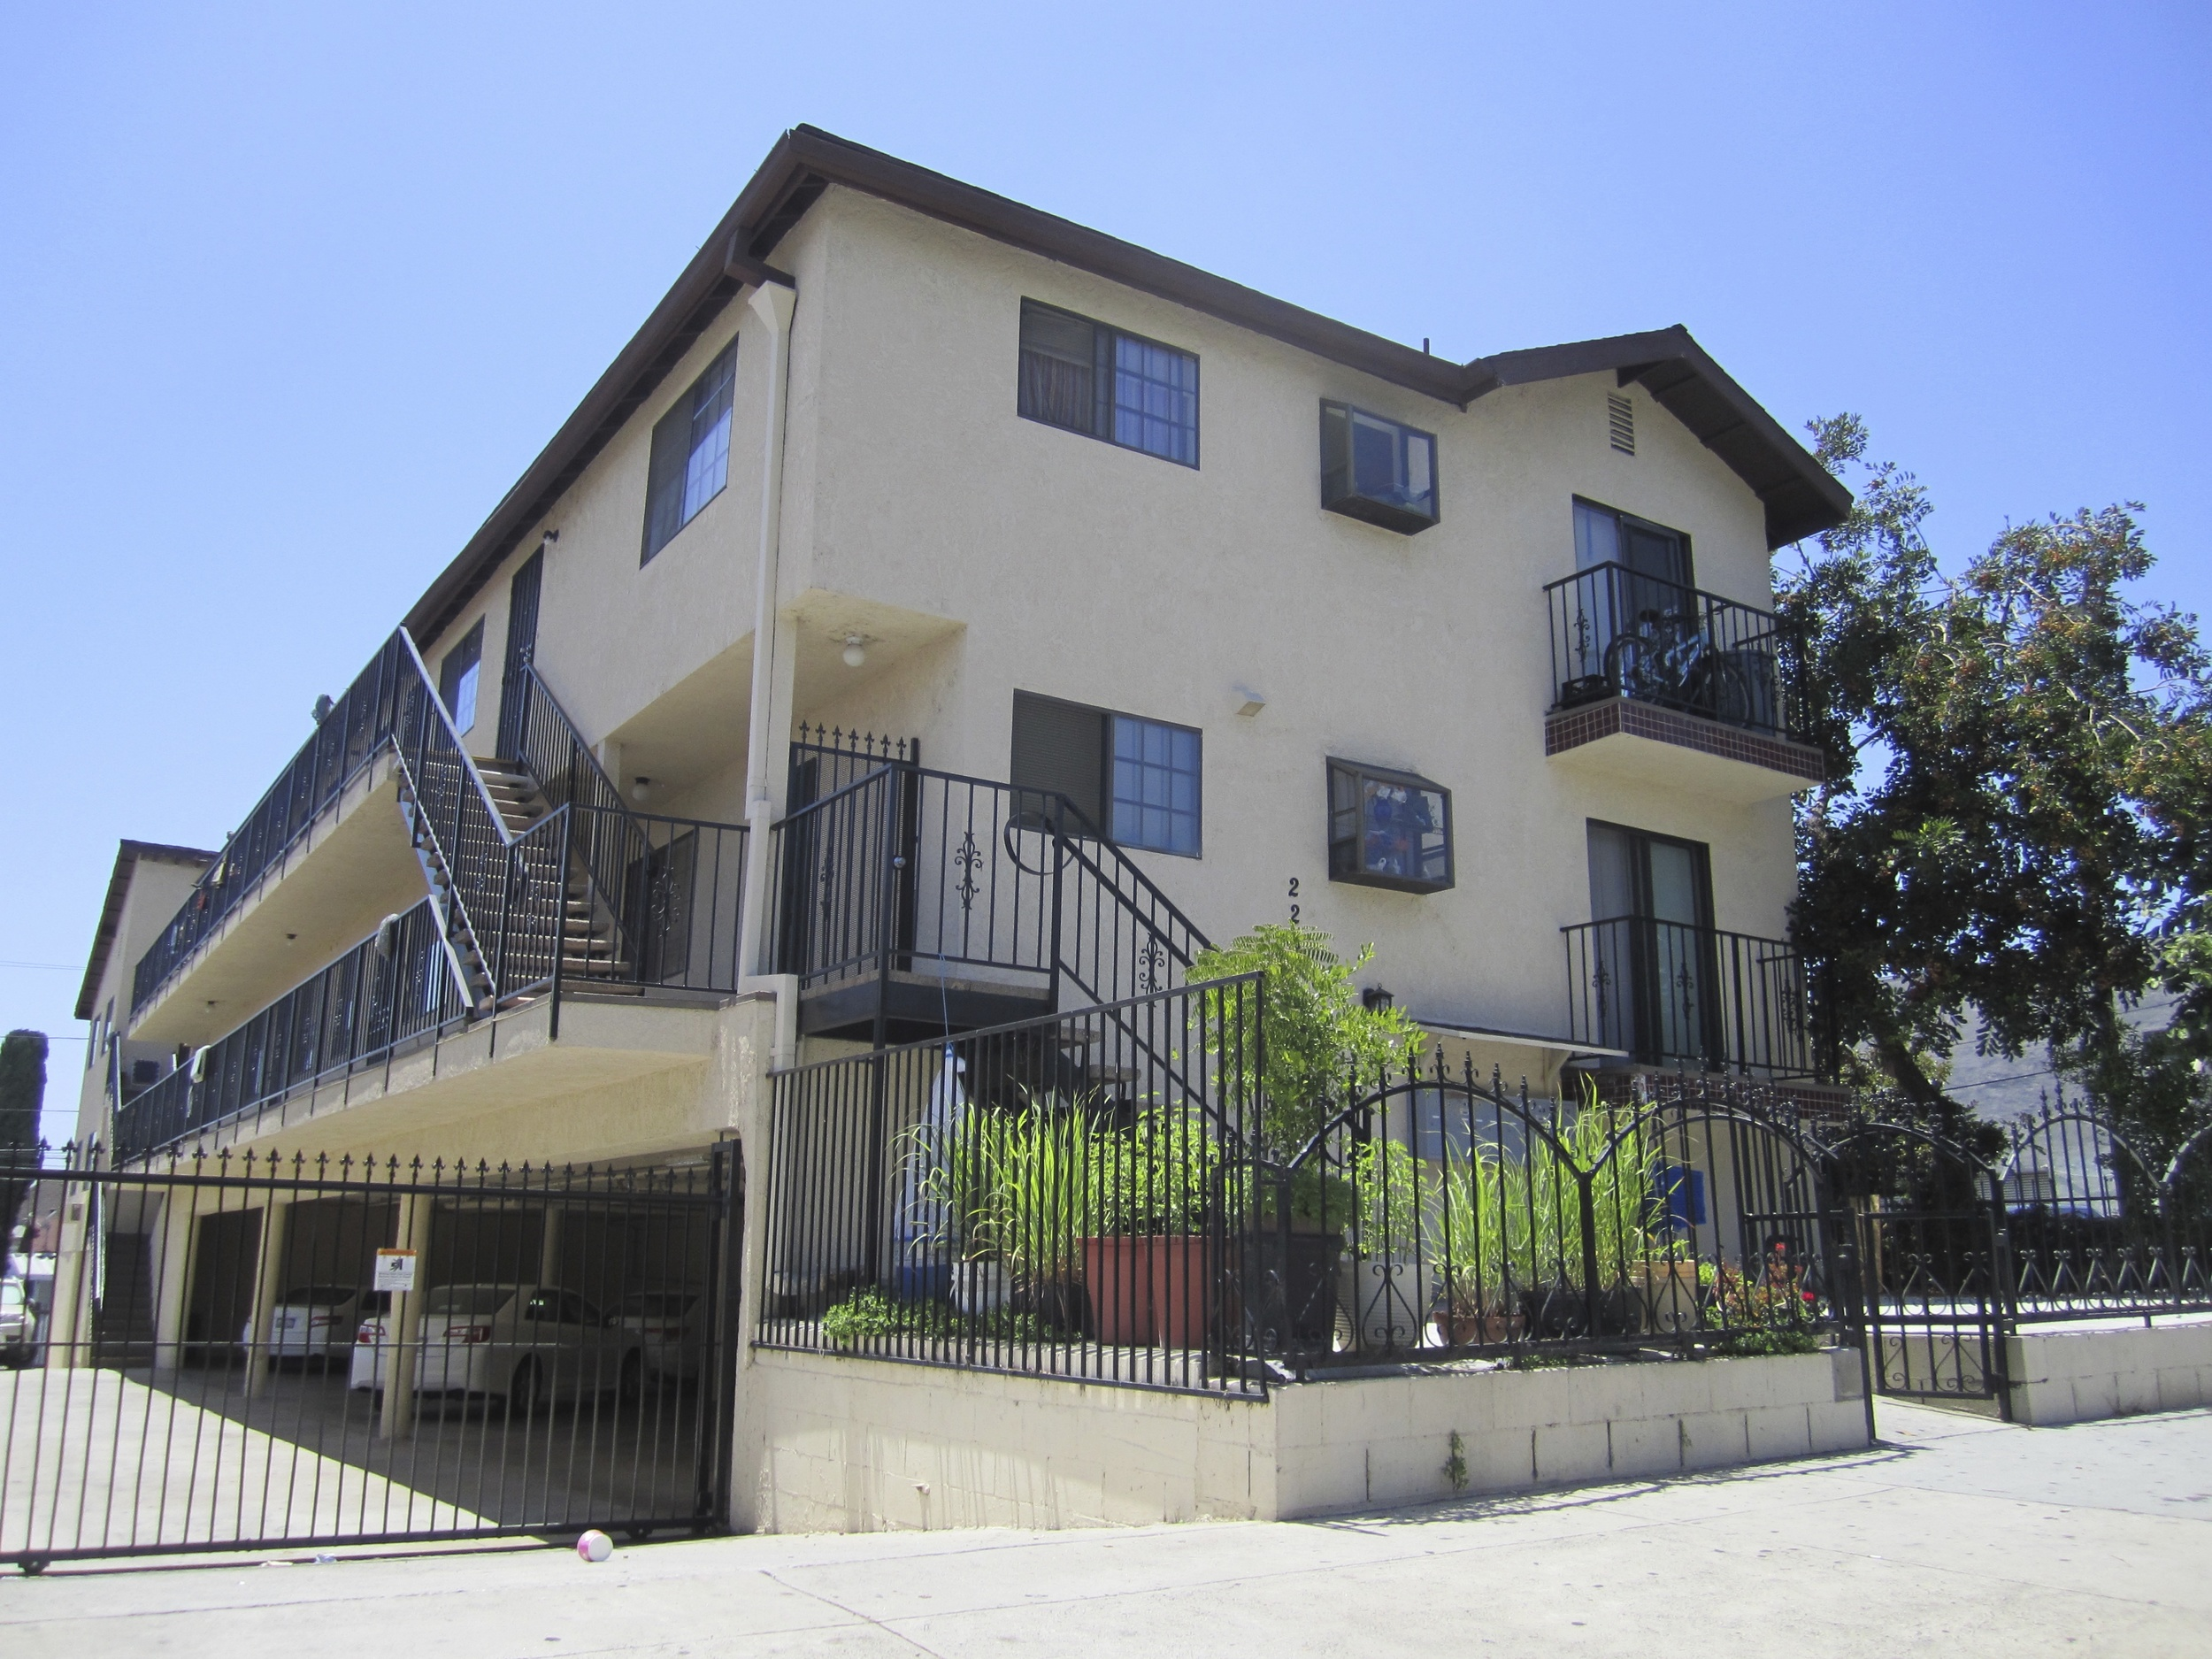 Los Angeles (Lincoln Heights), CA